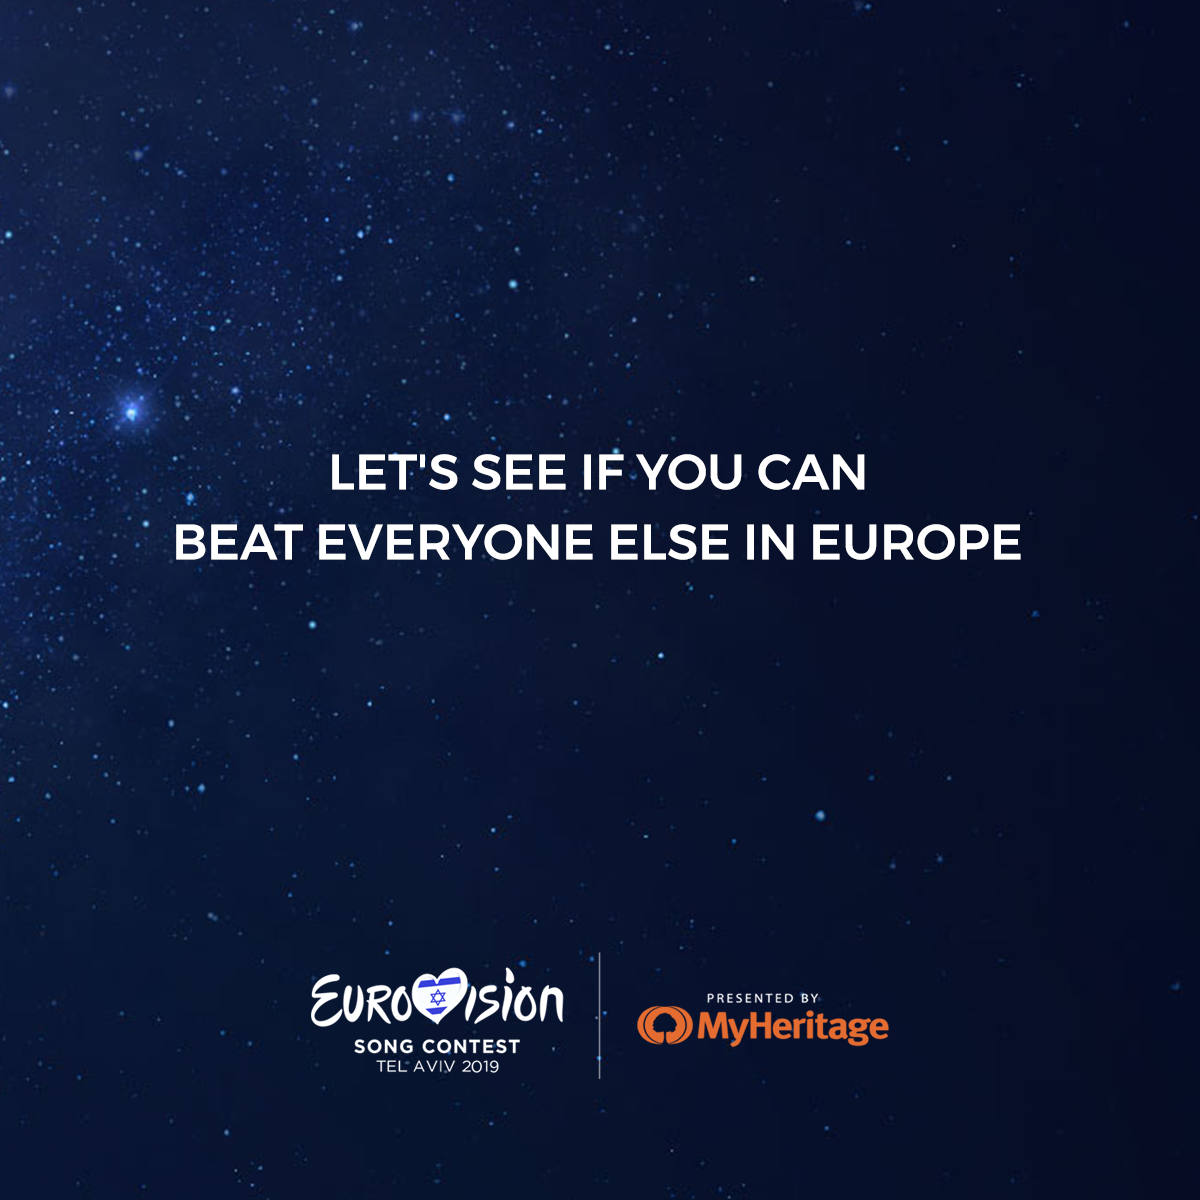 The promotional ads we created on Eurovision's official social networks